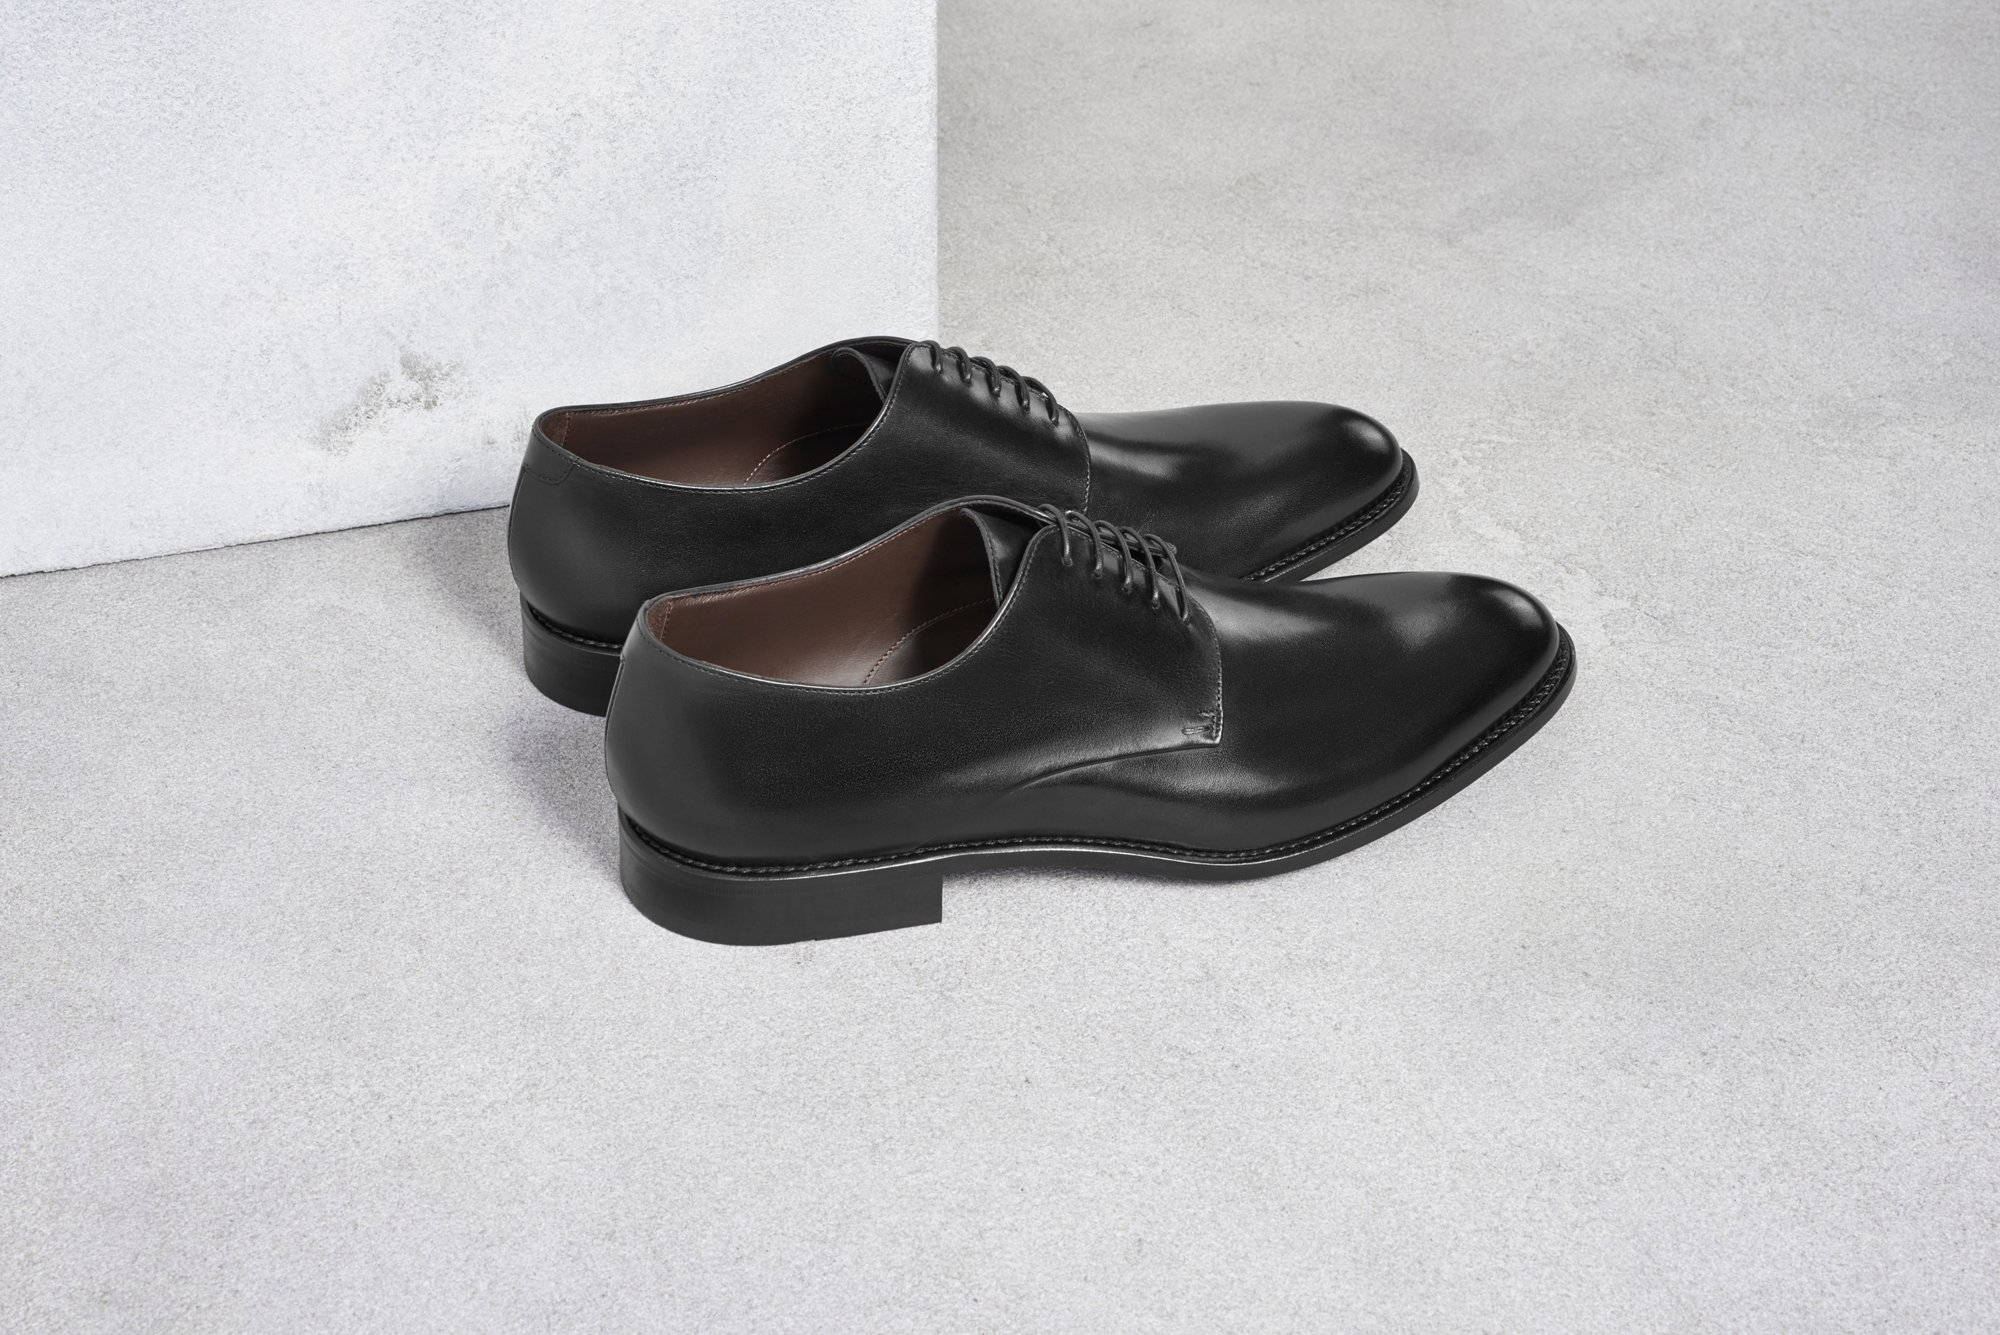 Chaussures noires BOSS